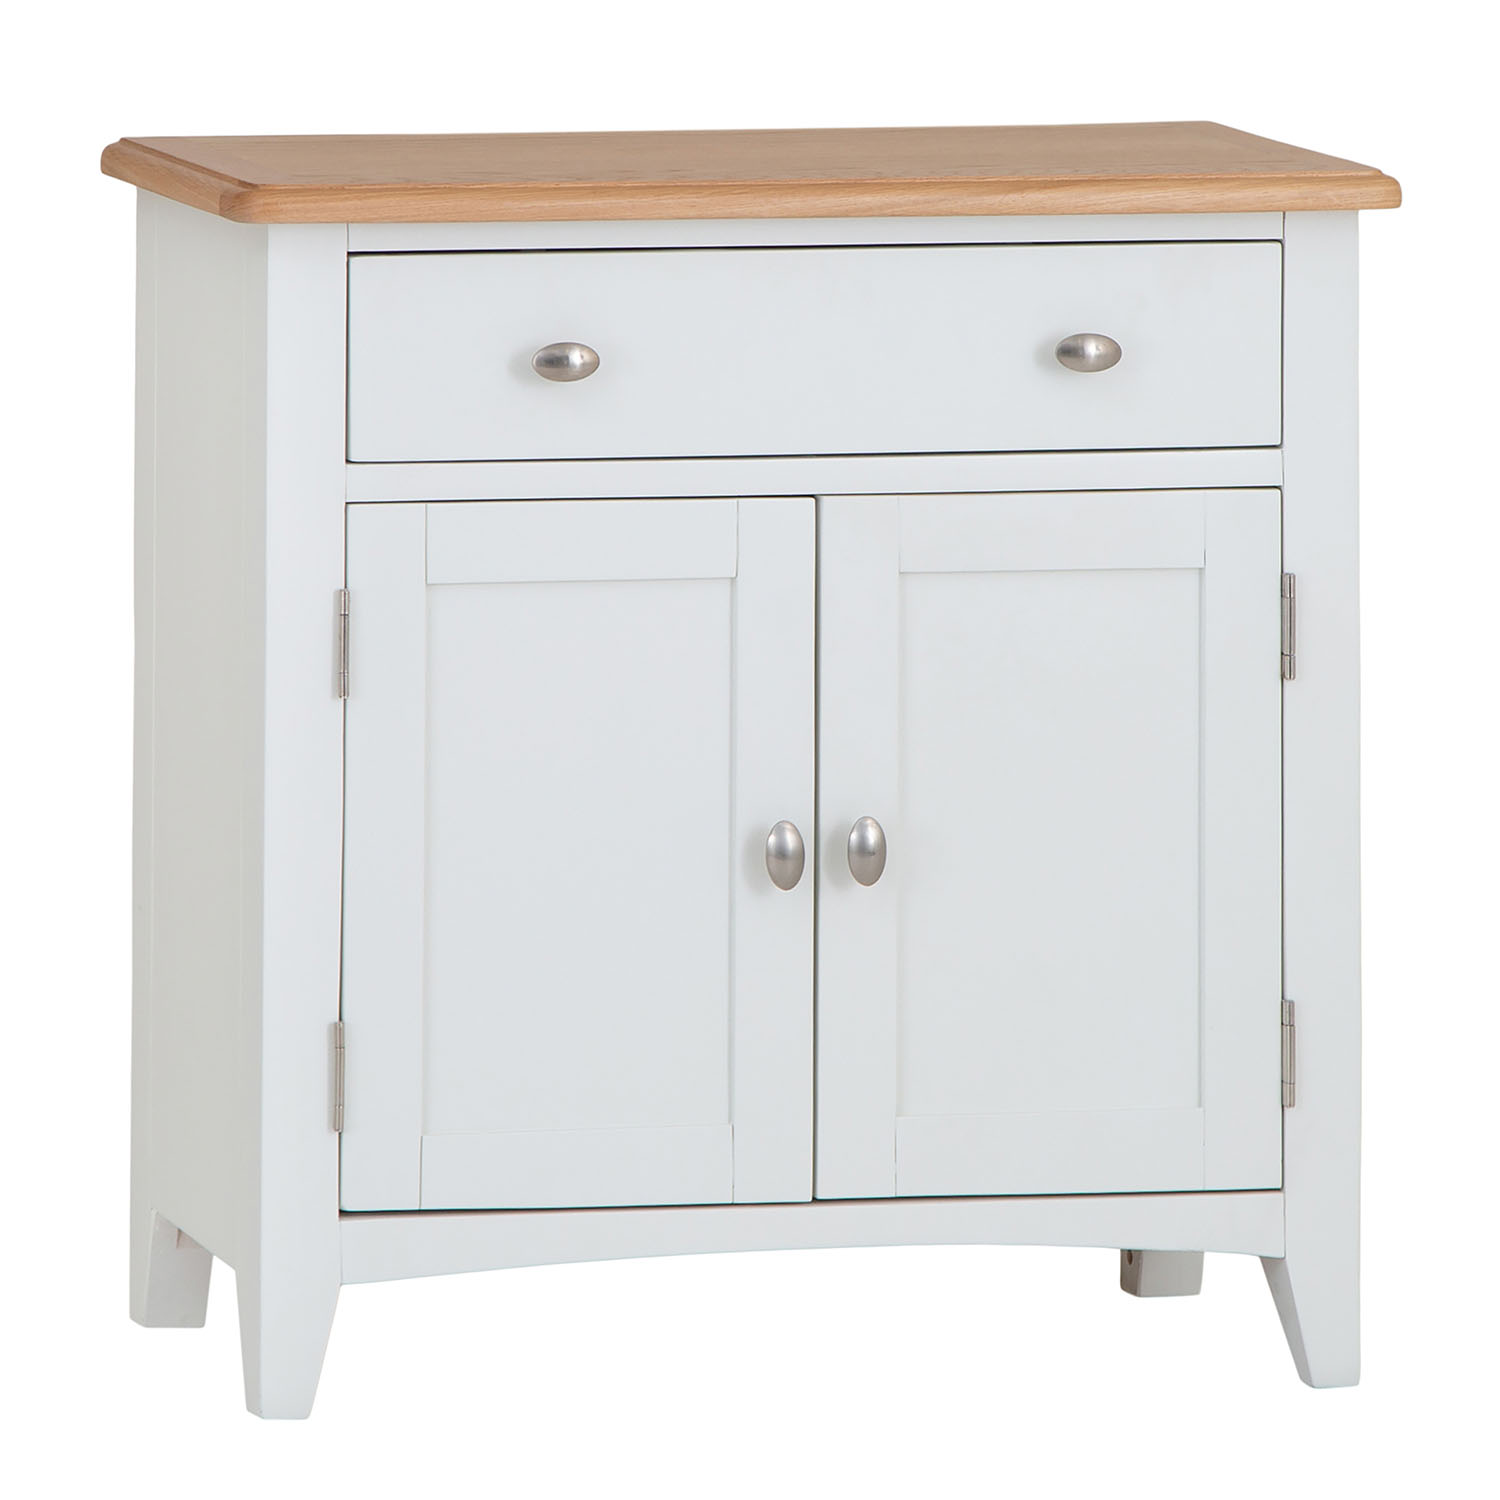 Hurstley Painted Small Sideboard